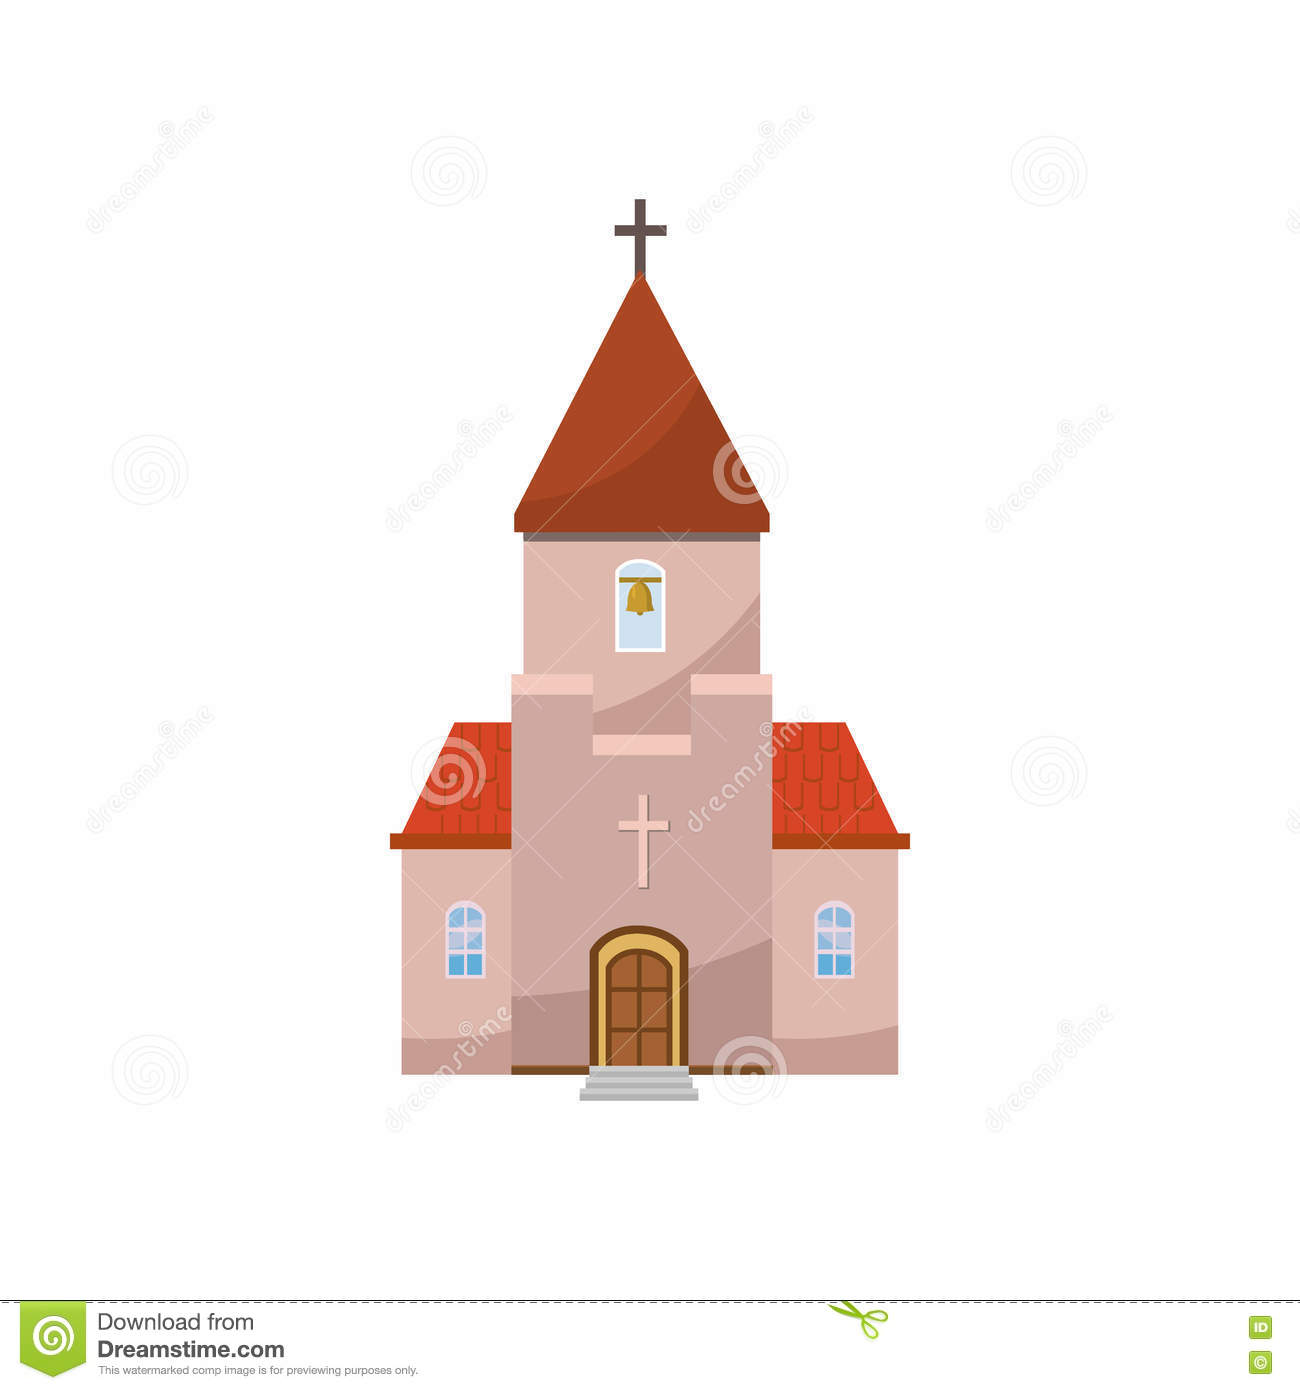 Church Icon In Cartoon Style Stock Vector - Illustration of house ...